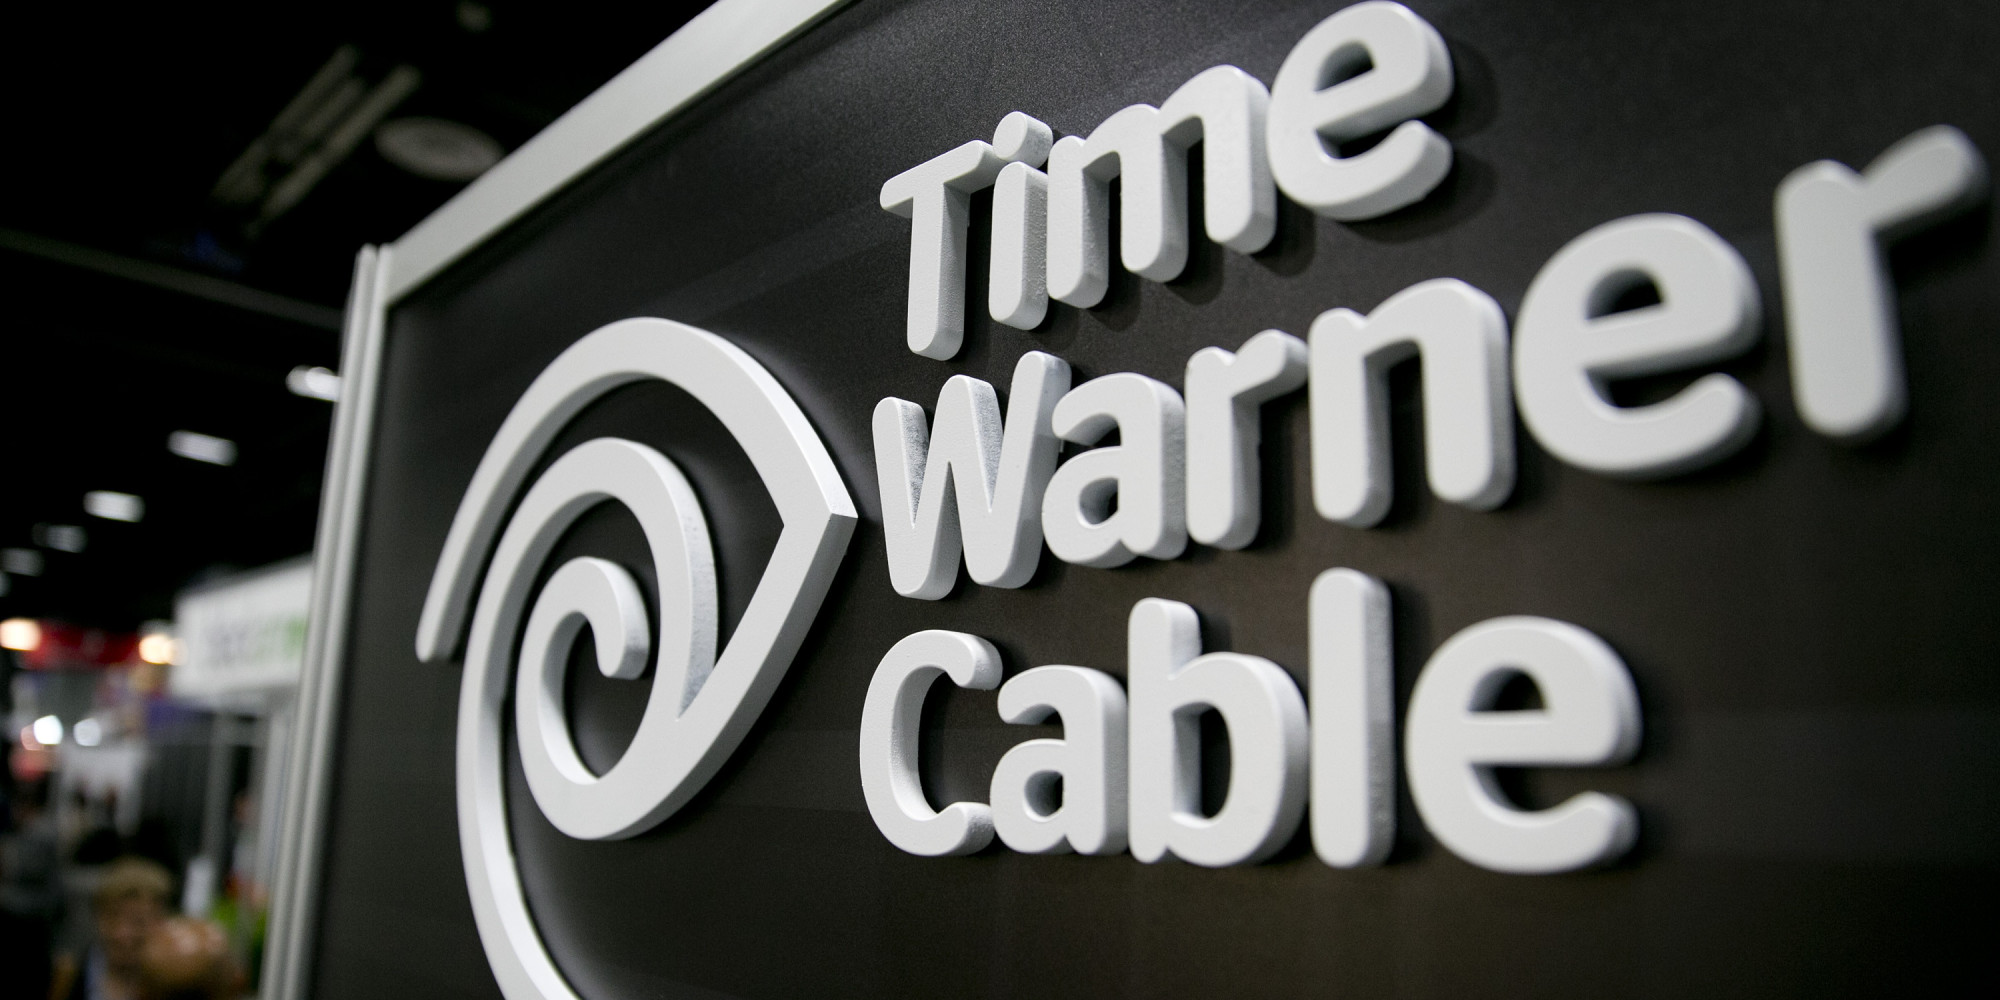 Time warner cable logo pictures to pin on pinterest thepinsta time warner cable logo 2012 bing images 1024x768 somehow buycottarizona Image collections